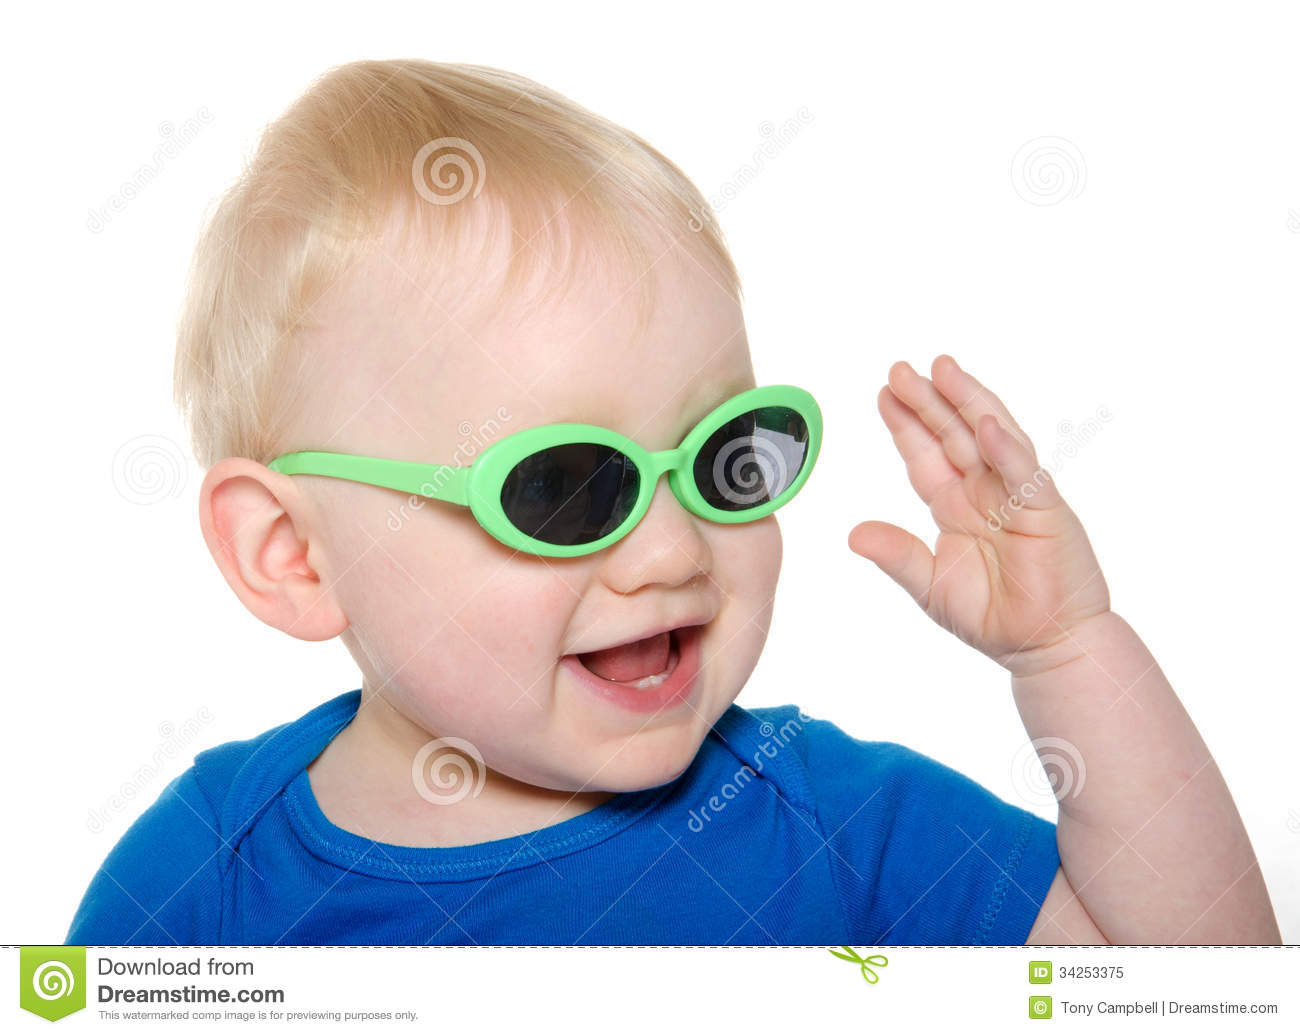 Shop The Children's Place & protect those eyes of his with Toddler & Baby Boy sunglasses, avaialable in beloved retro styles.